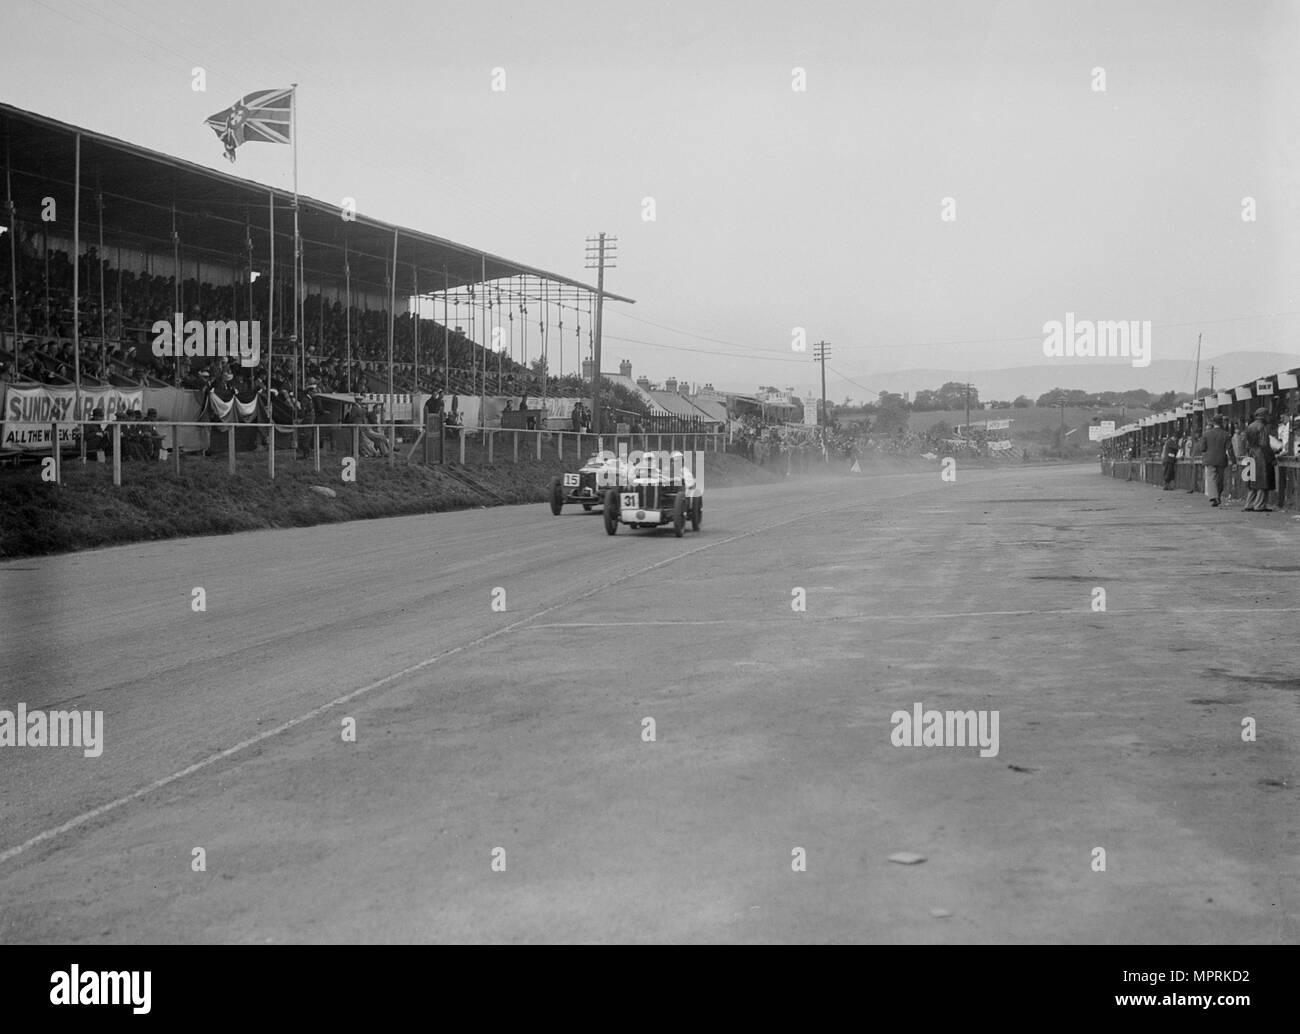 MG C type Midget of Cyril Paul and Riley of Edgar Maclure, RAC TT Race, Ards Circuit, Belfast, 1932. Artist: Bill Brunell. - Stock Image